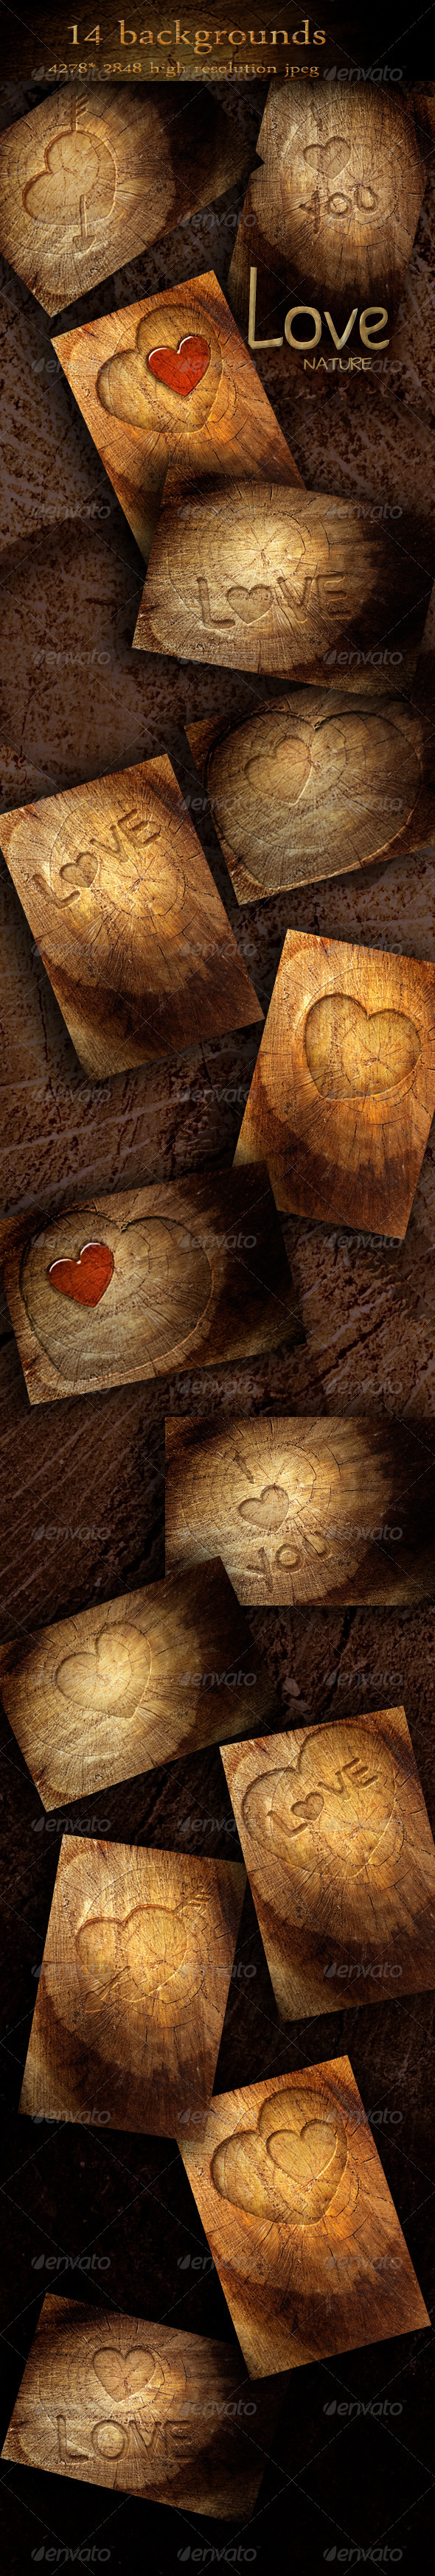 Nature Wood Backgrounds with Love Symbols - Nature Backgrounds